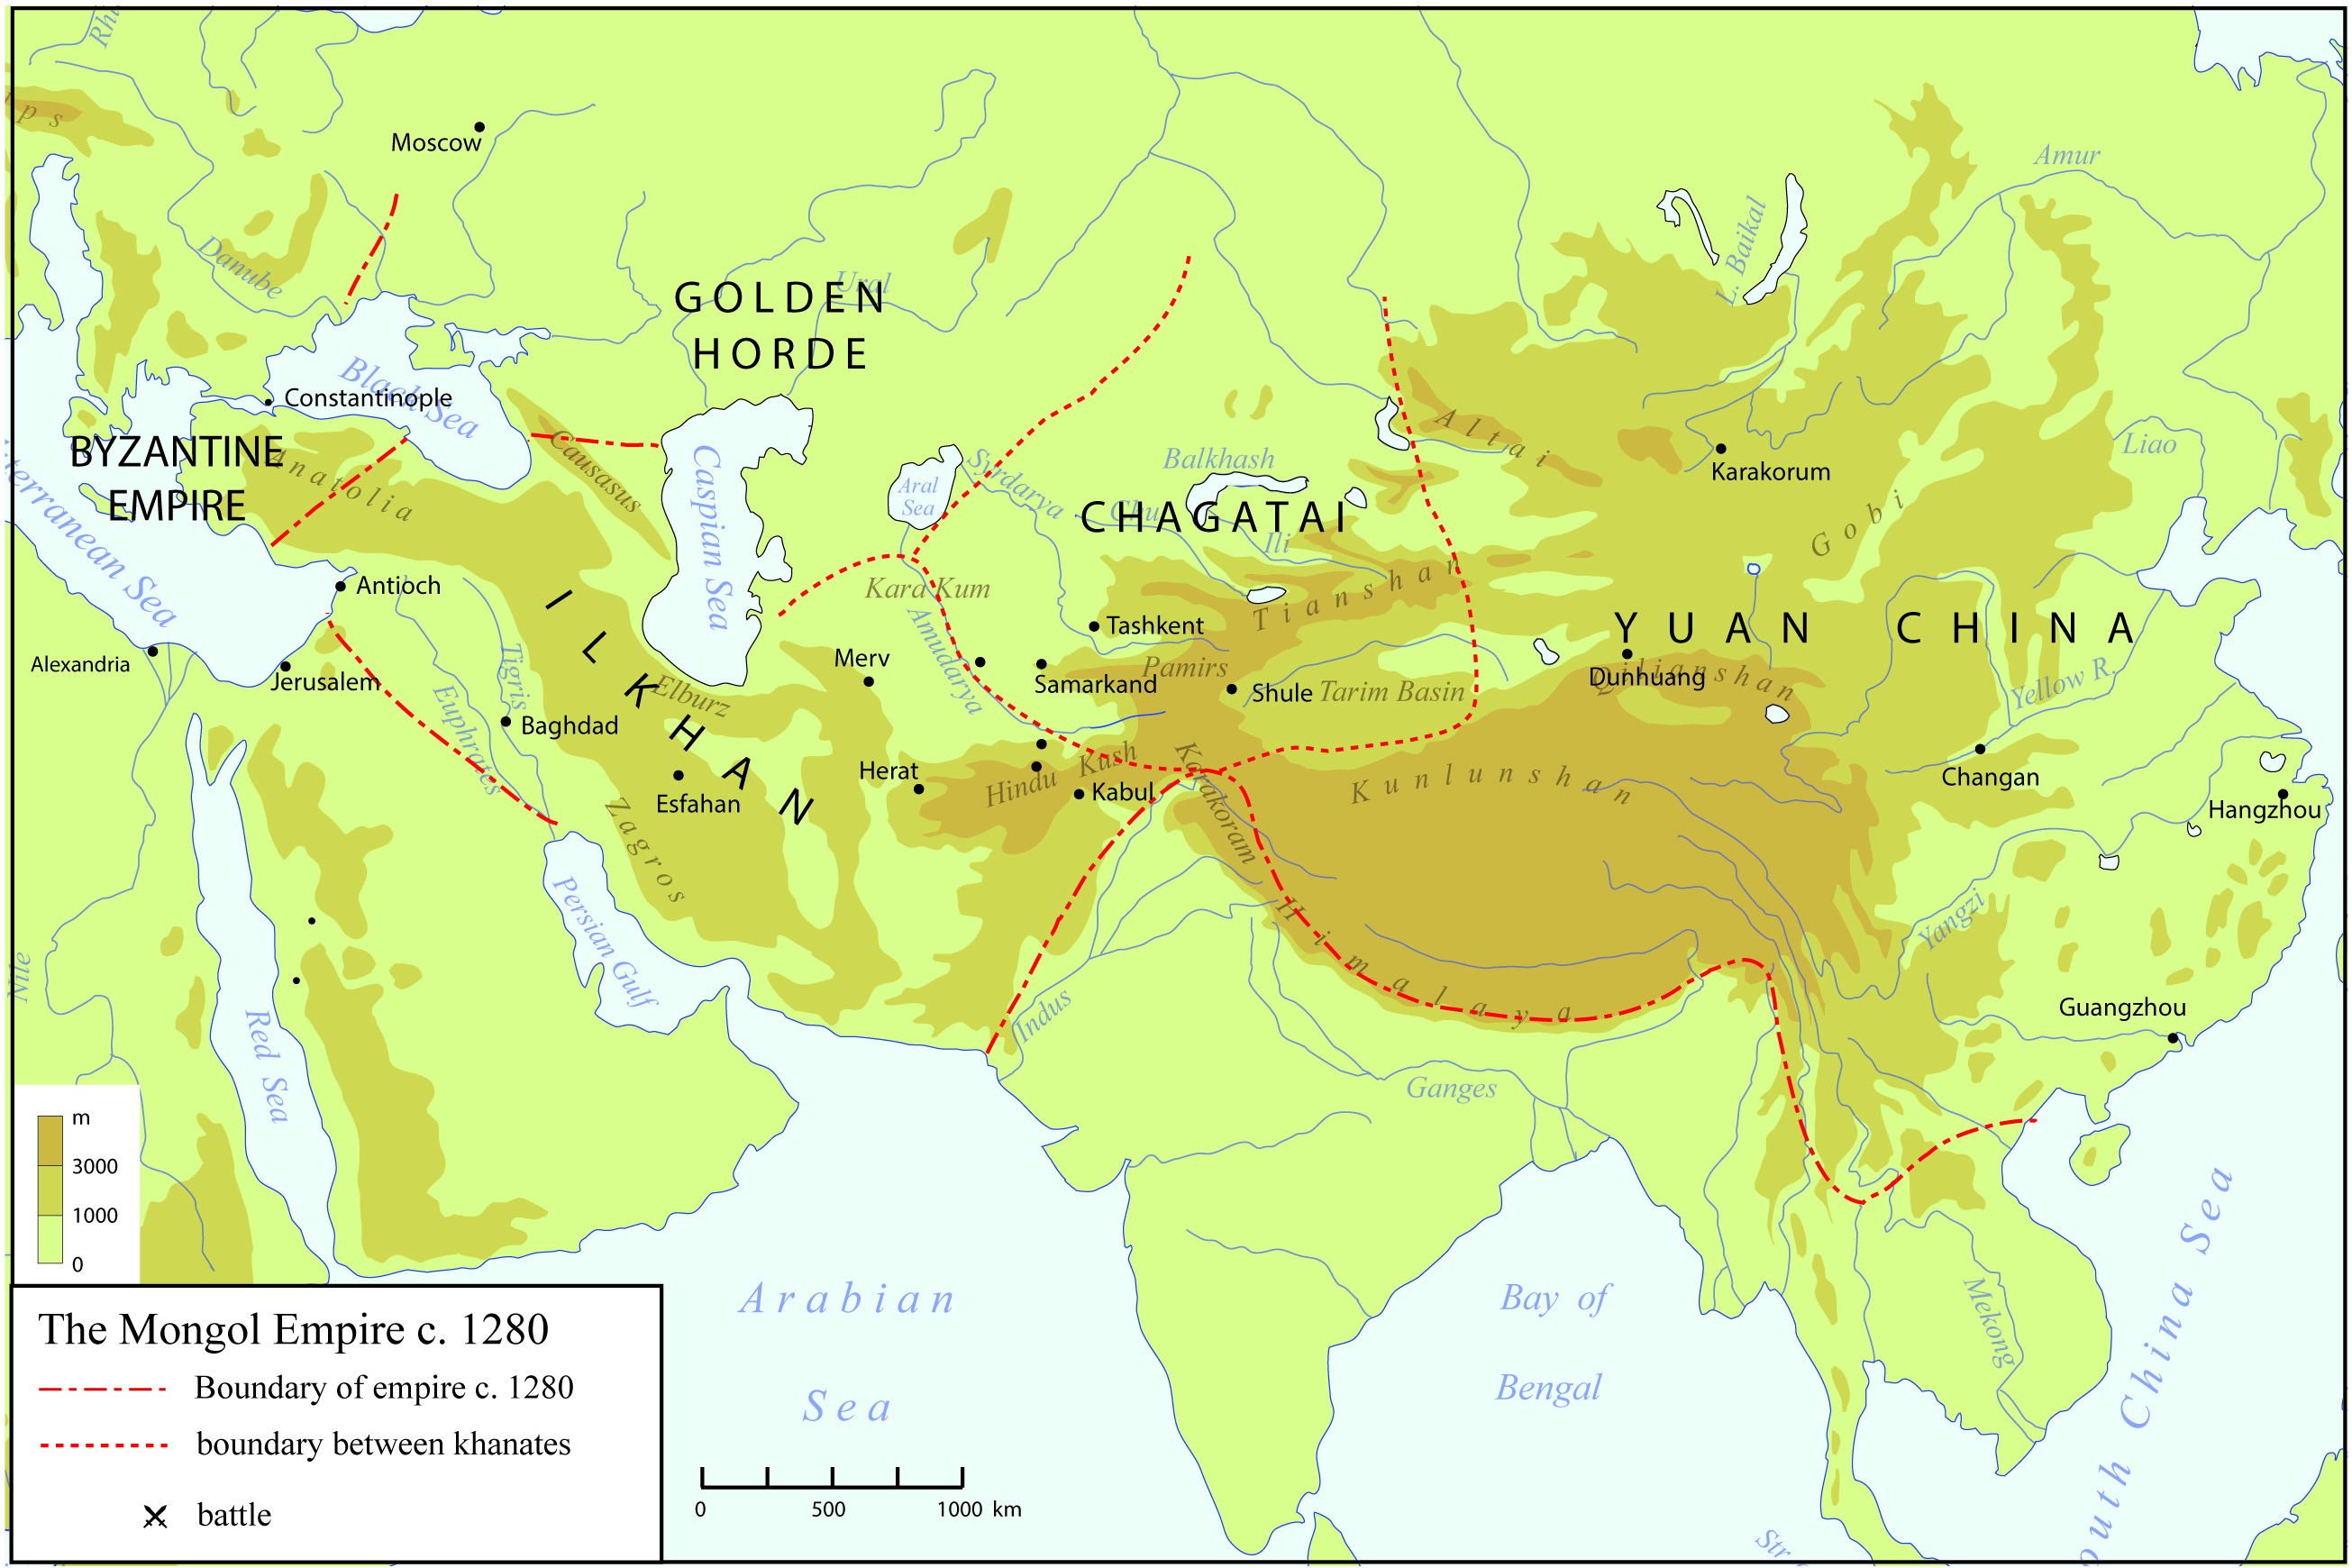 mongol empire and silk road essay Trade on the silk road history essay print trade along the silk road in the pre-mongol era mainly the attitude of the major empire along the silk road.